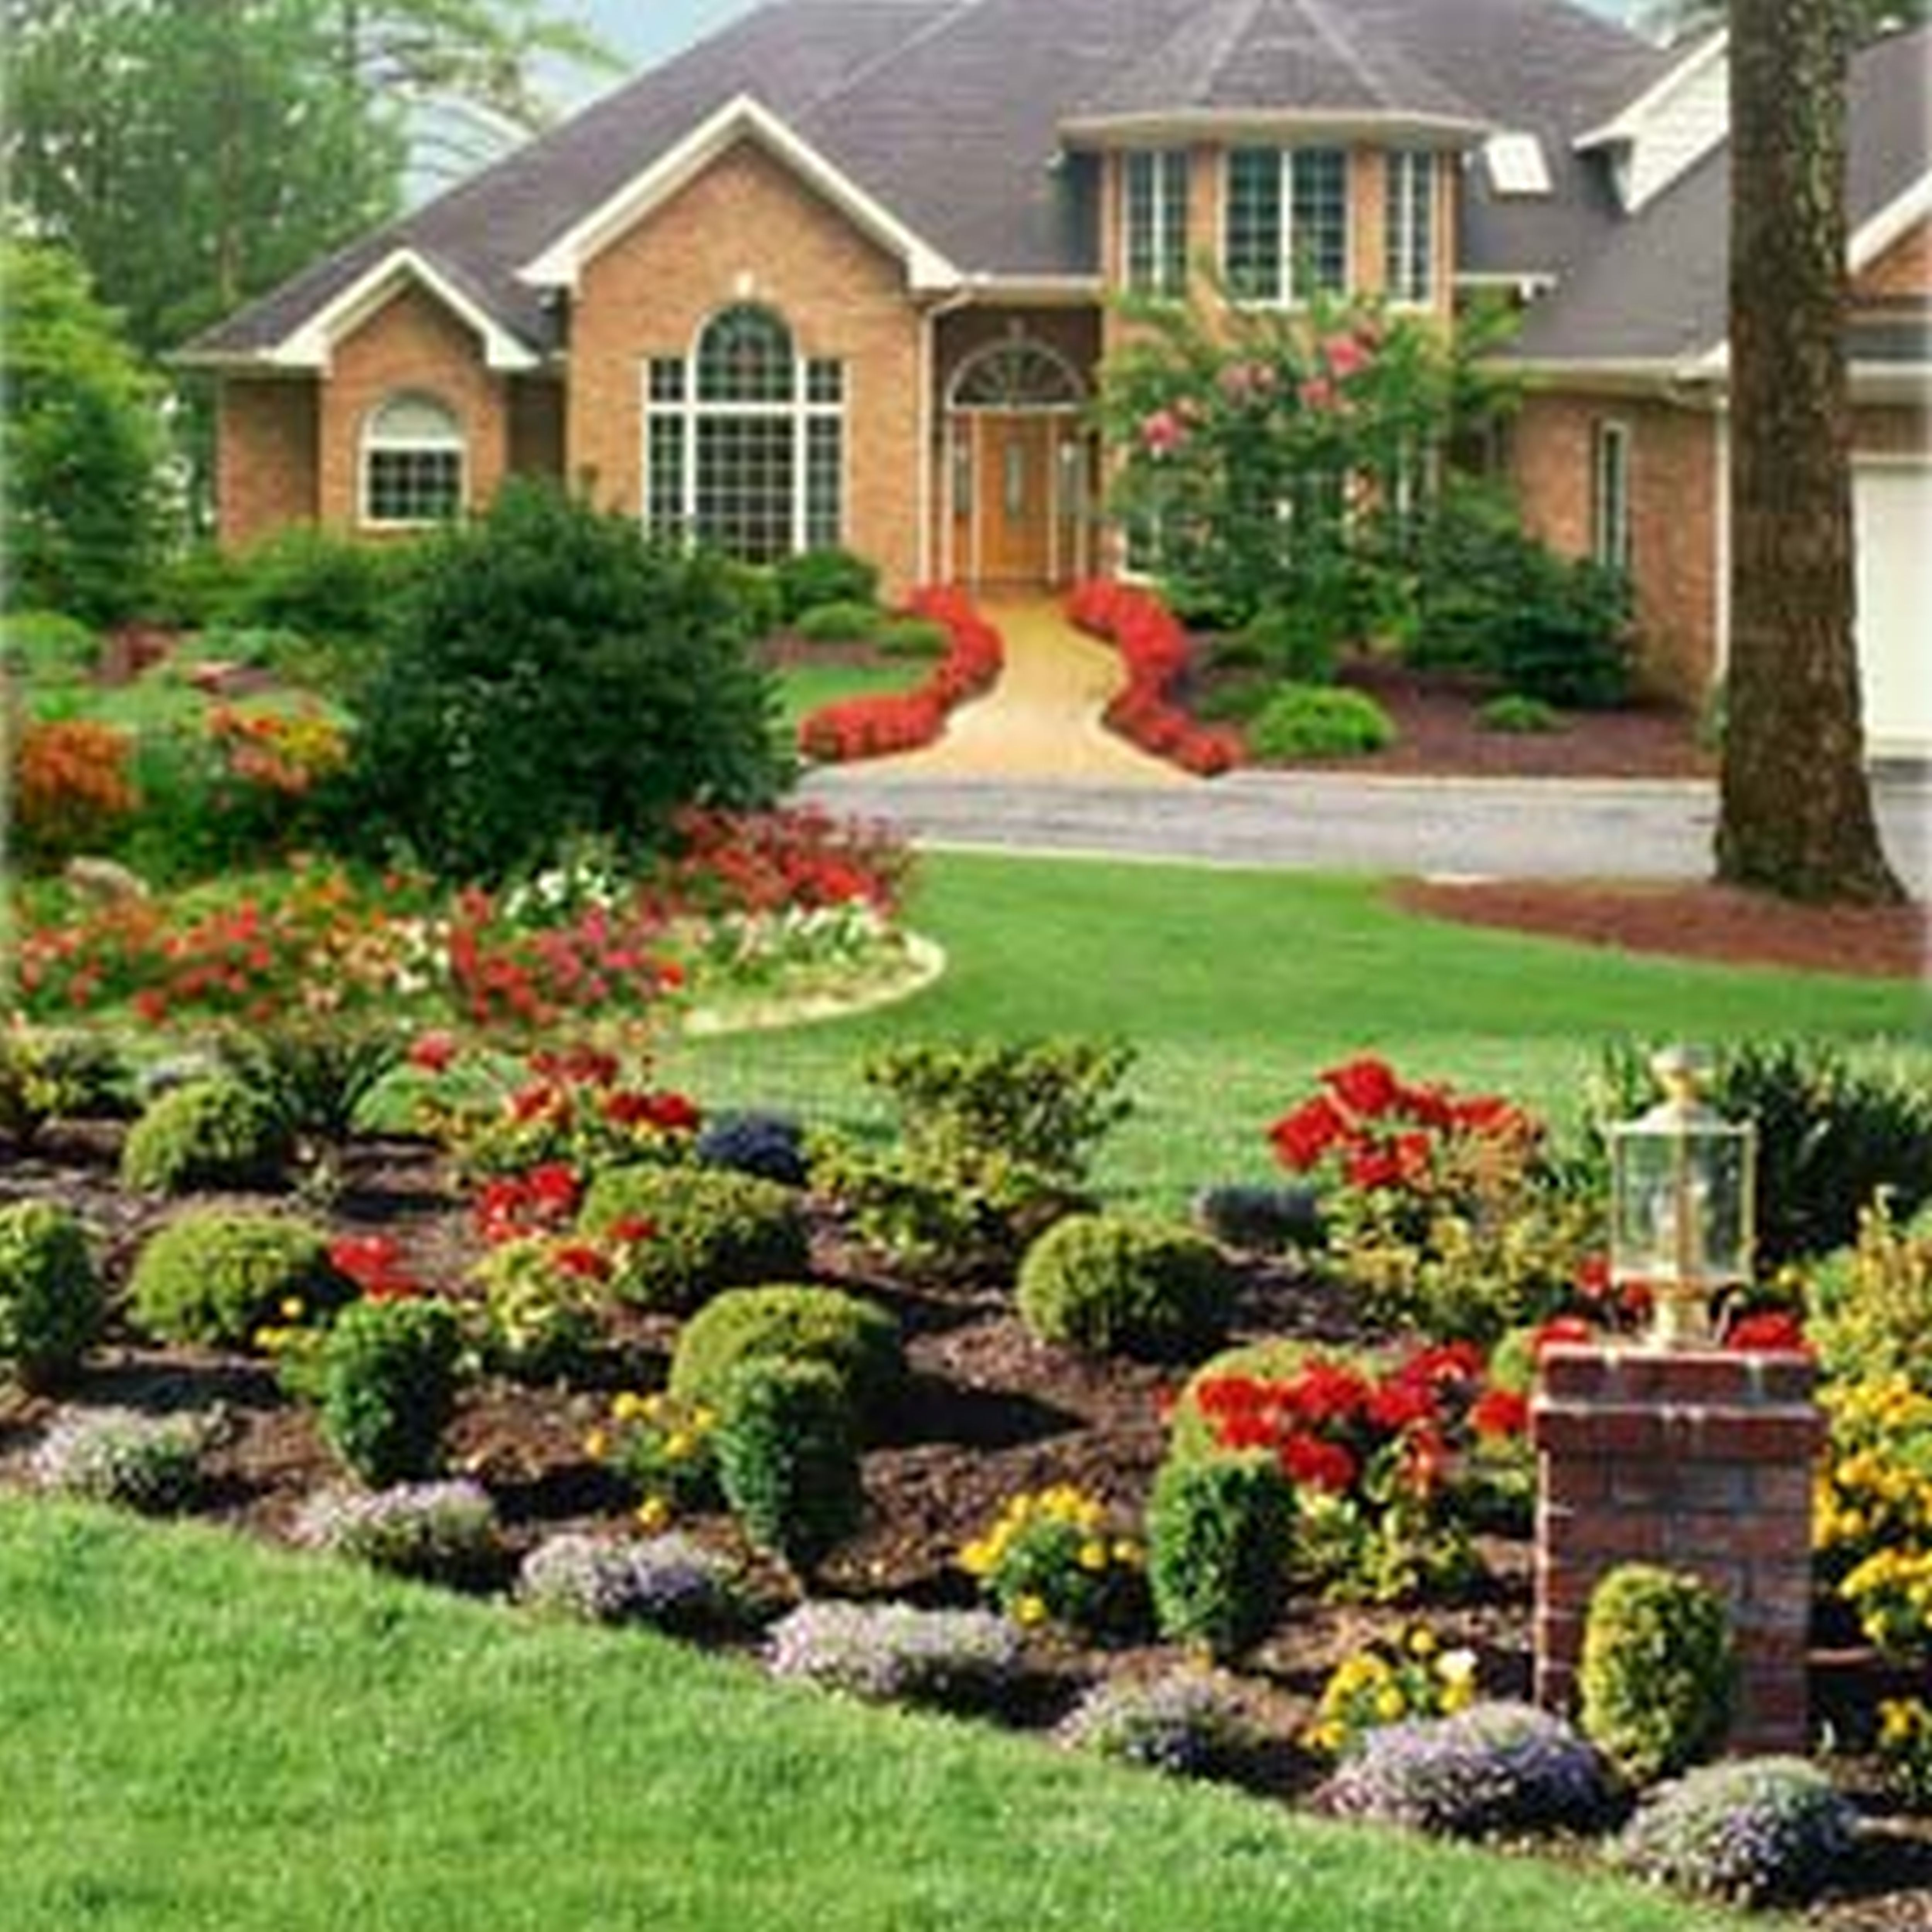 Join The Discussion On This Contractors Fences Websites Fountain Planning Bed Brea Front House Landscaping Front Yard Landscaping Design Front Yard Landscaping